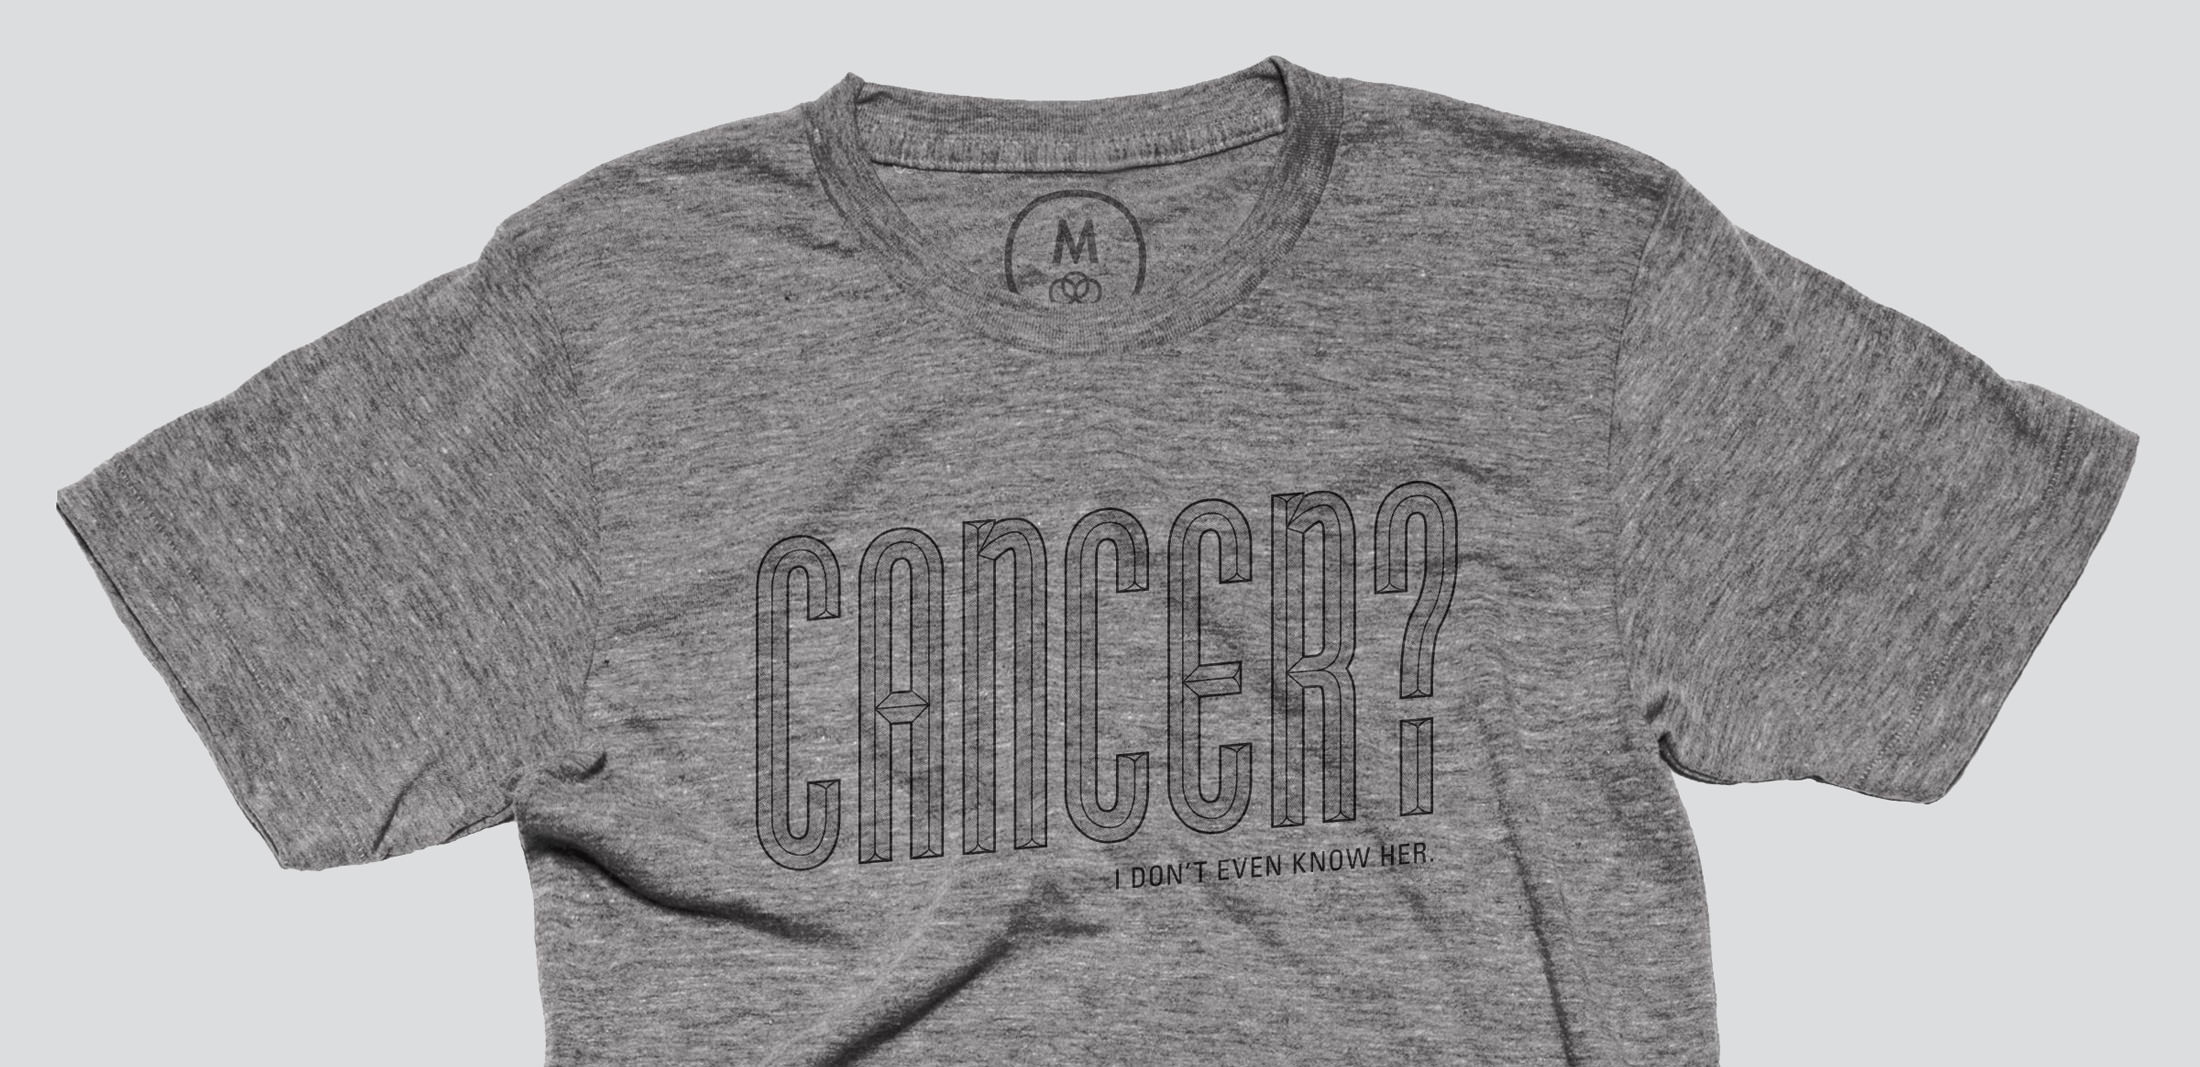 A Cancer? I don't even know her. t-shirt is available through Cotton Bureau.